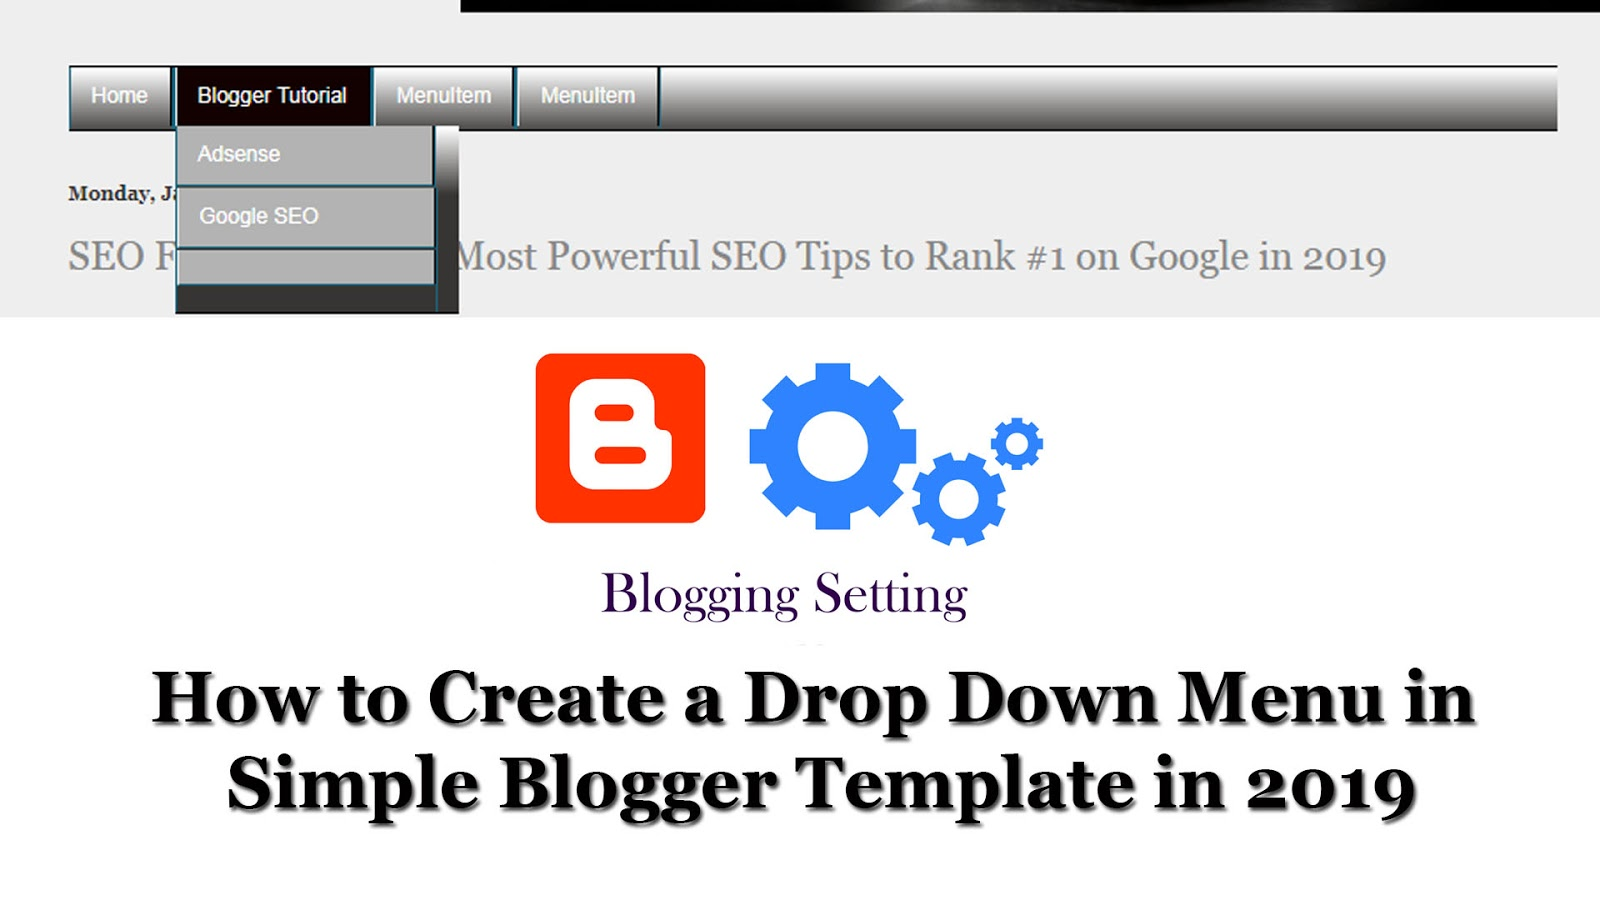 How To Create A Drop Down Menu In Simple Blogger Template In 2019